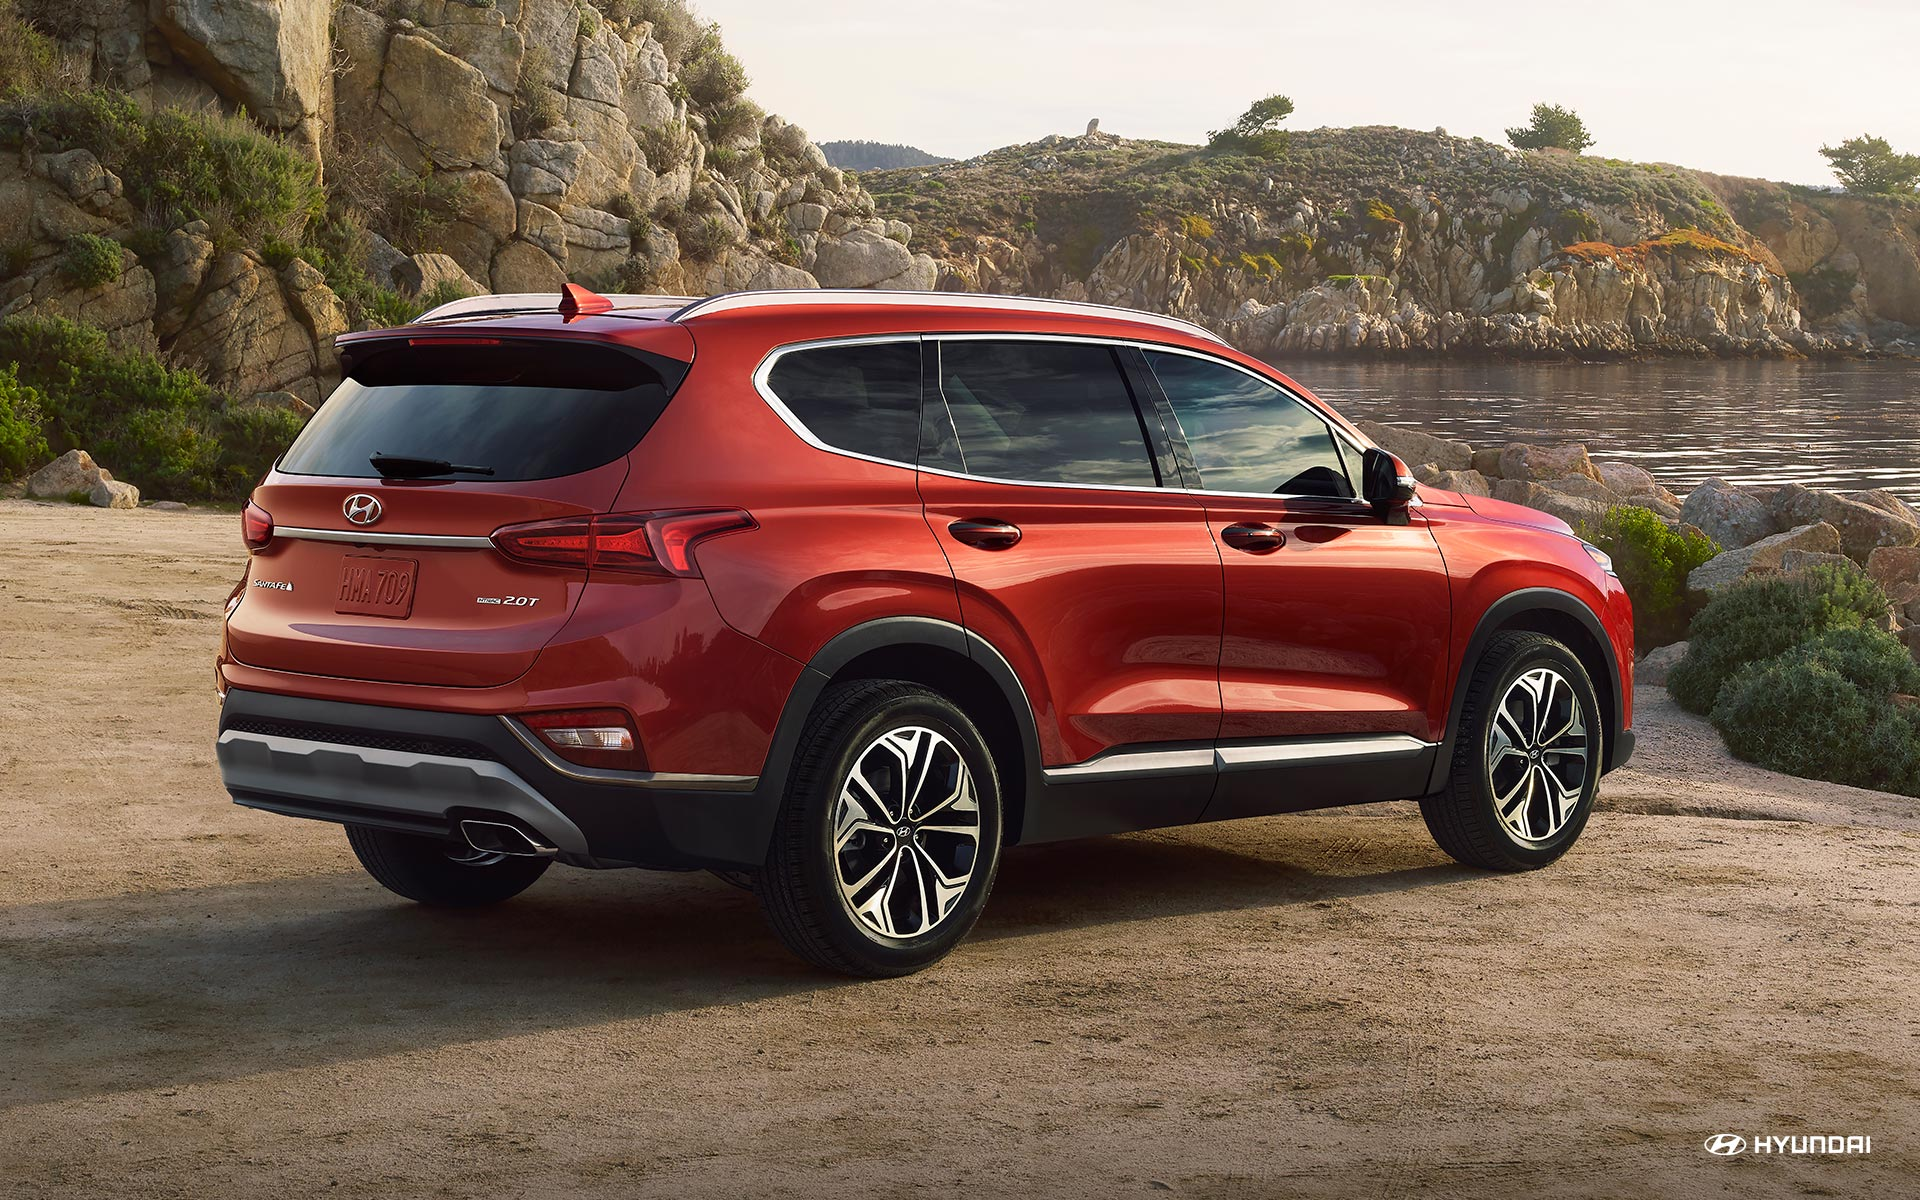 Buy, Lease, or Finance the 2020 Hyundai Santa Fe near Riverhead NY